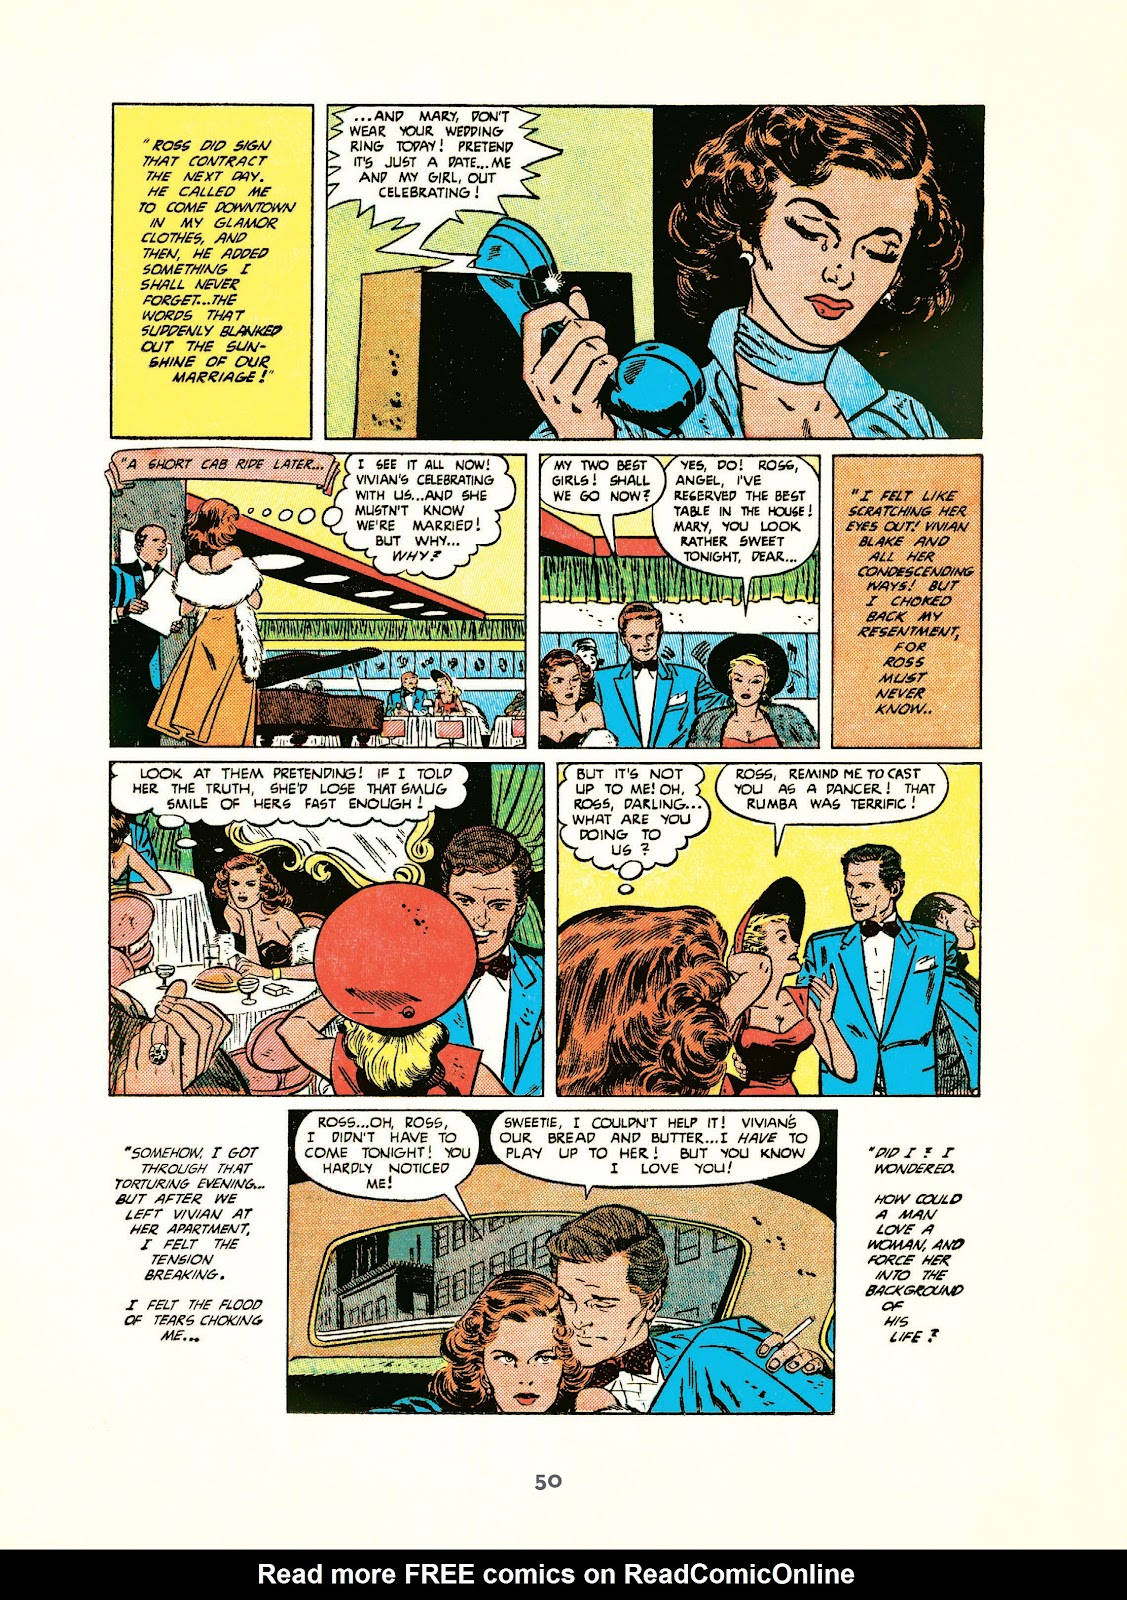 Read online Setting the Standard: Comics by Alex Toth 1952-1954 comic -  Issue # TPB (Part 1) - 49